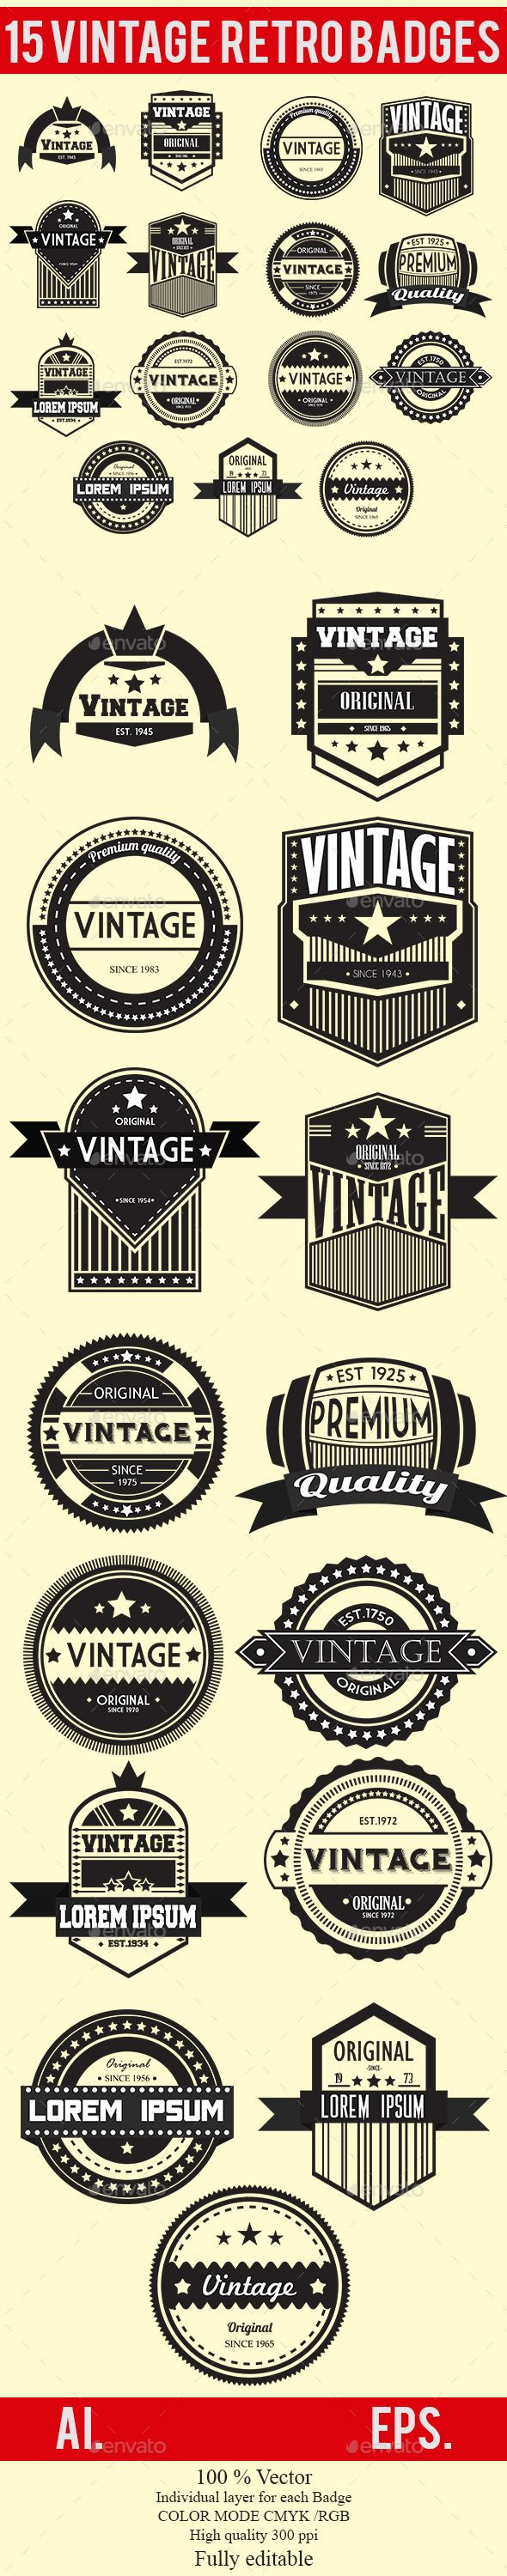 15 Vintage Retro Badges Set 1 - Badges & Stickers Web Elements